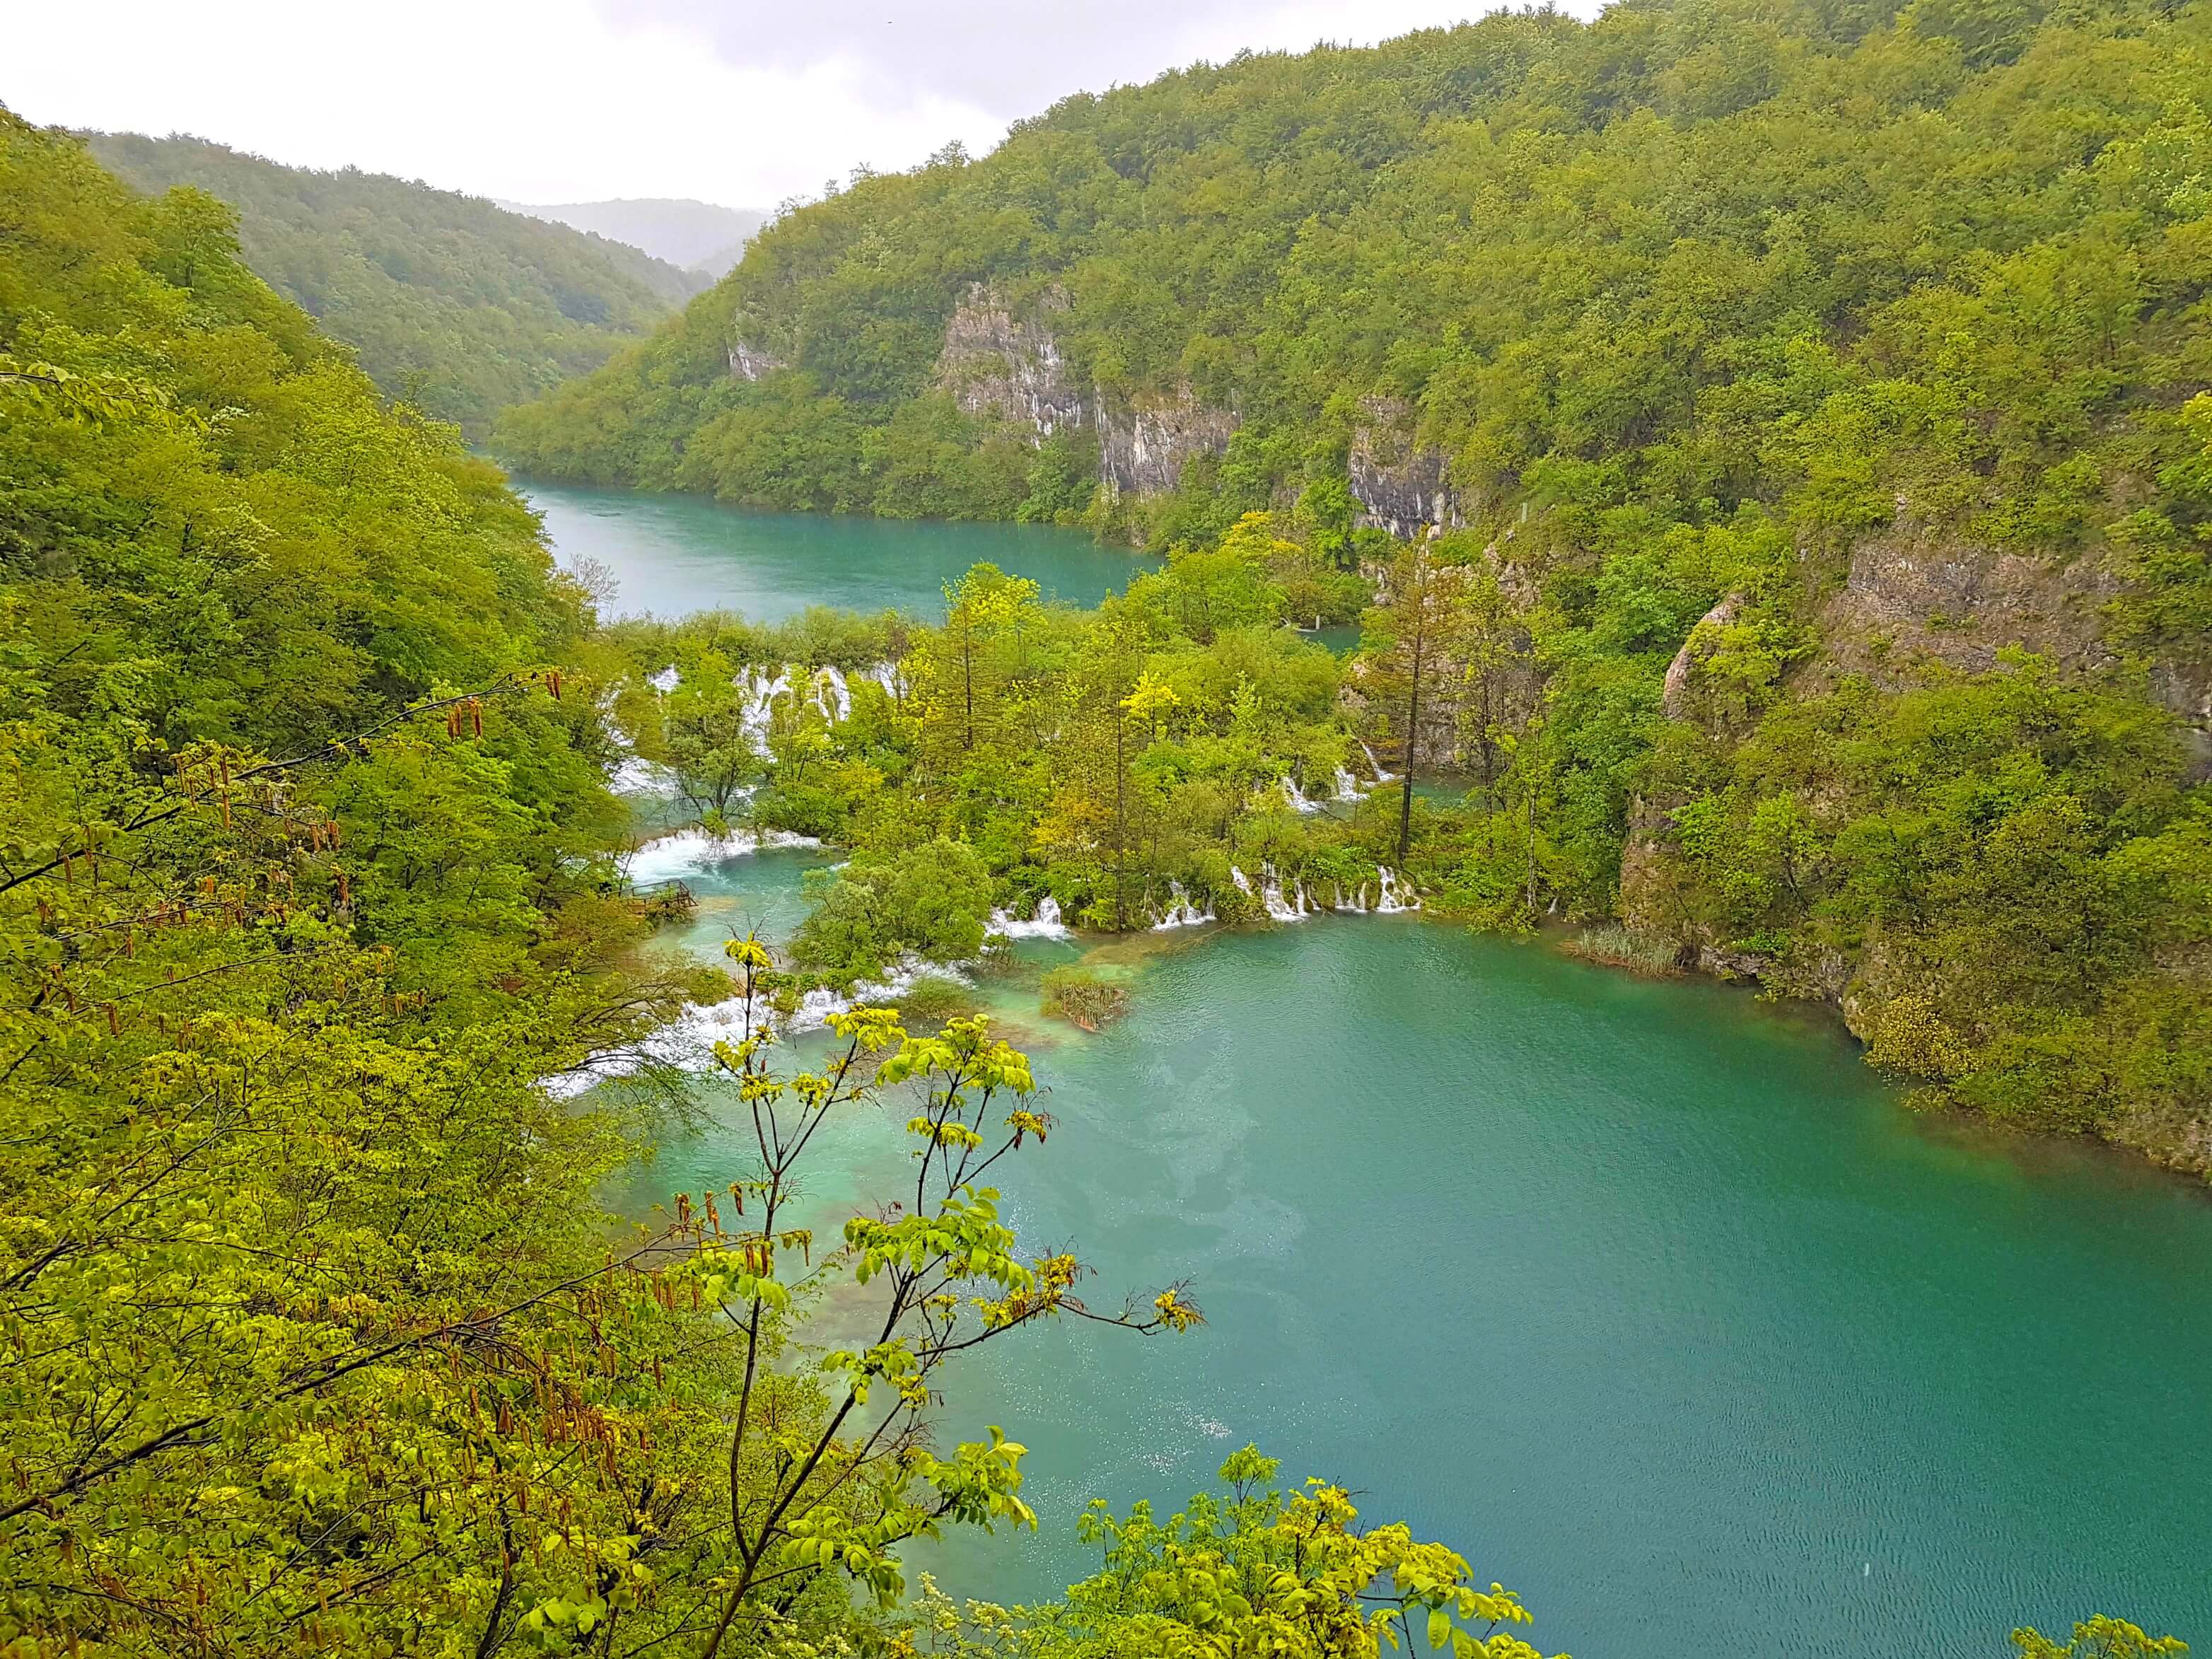 Photo essay: Exploring the Plitvice Lakes